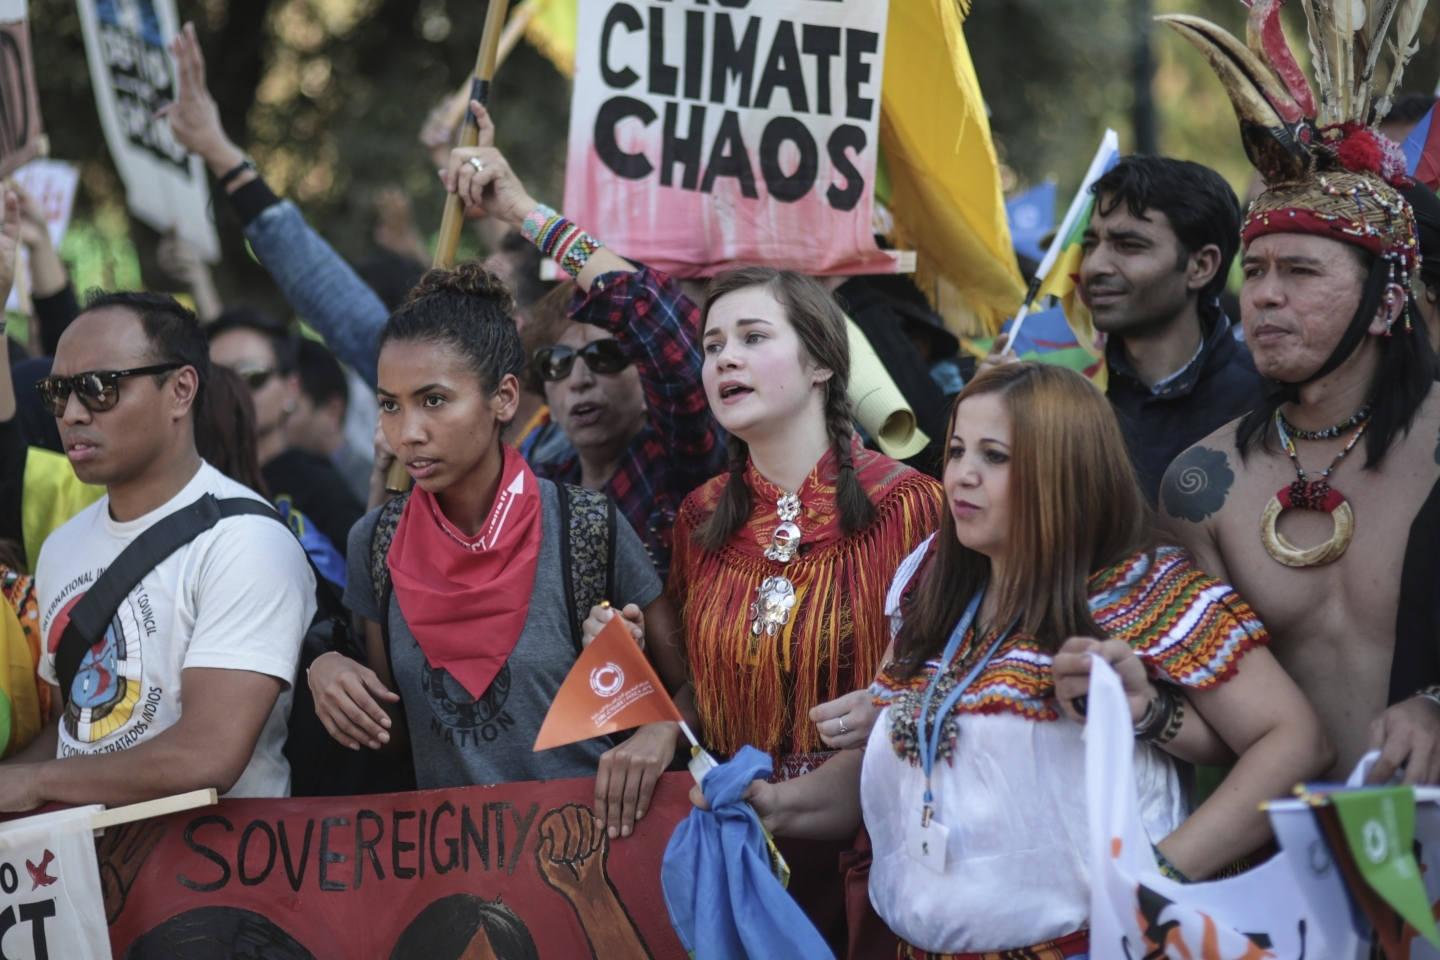 Hundreds urge world leaders to take actions in a march coinciding with the Climate Conference, known as COP22, taking place in Marrakech, Morocco (AP Photo/Mosa'ab Elshamy)